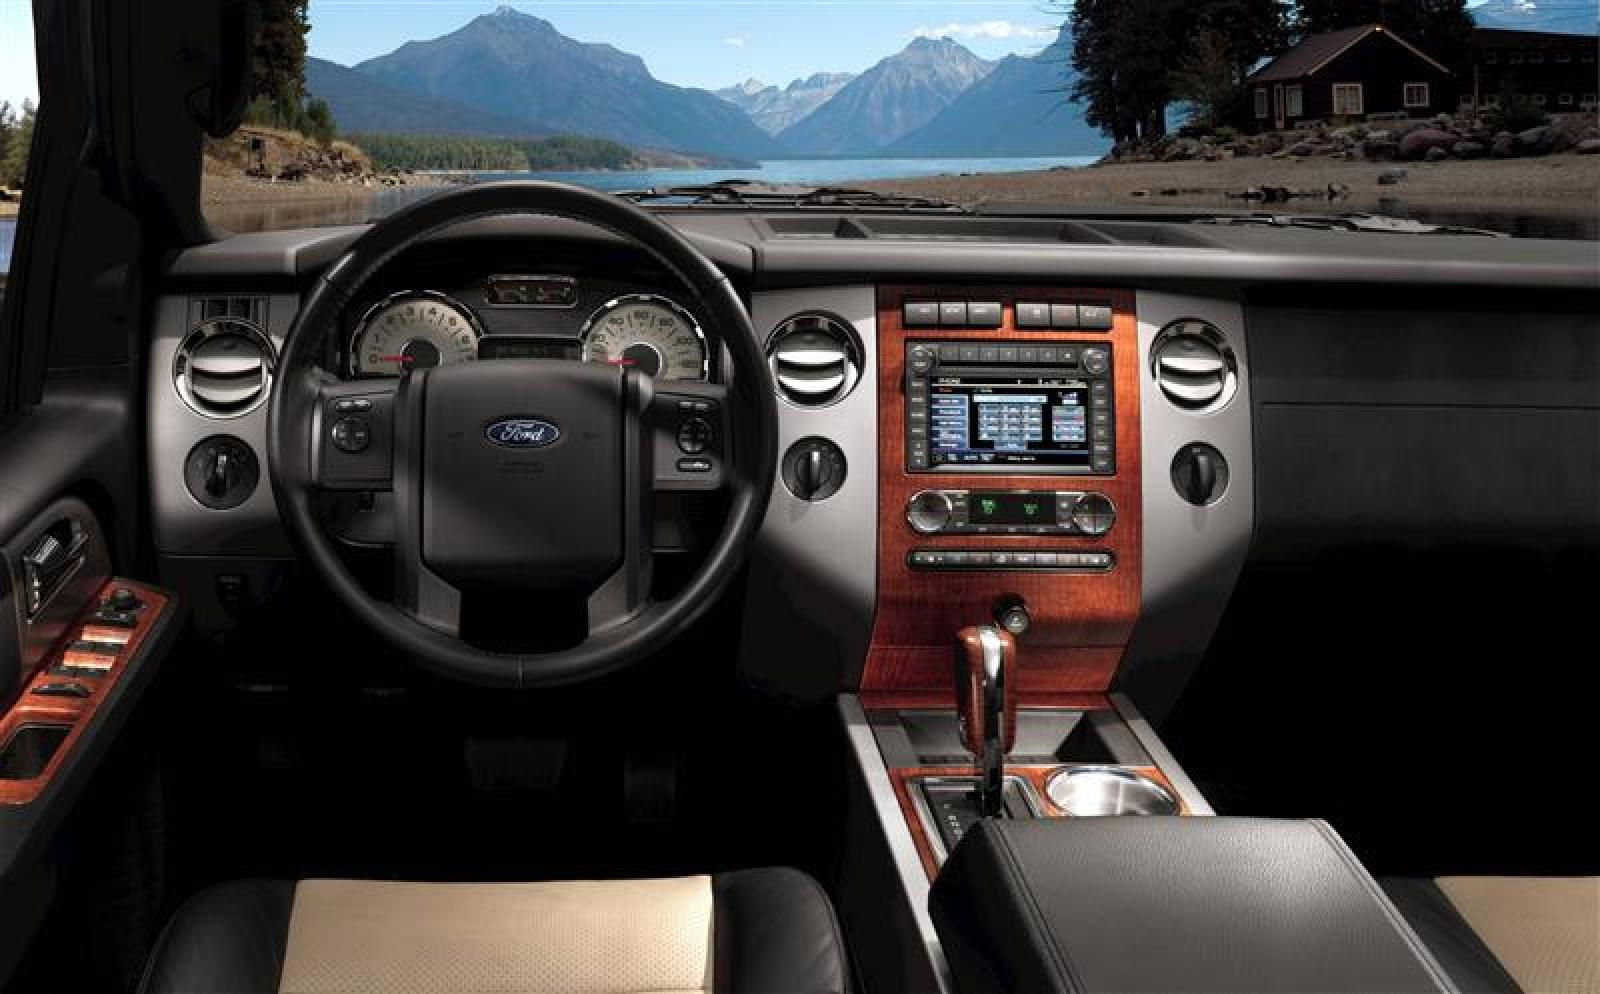 800 1024 1280 1600 origin 2009 ford expedition